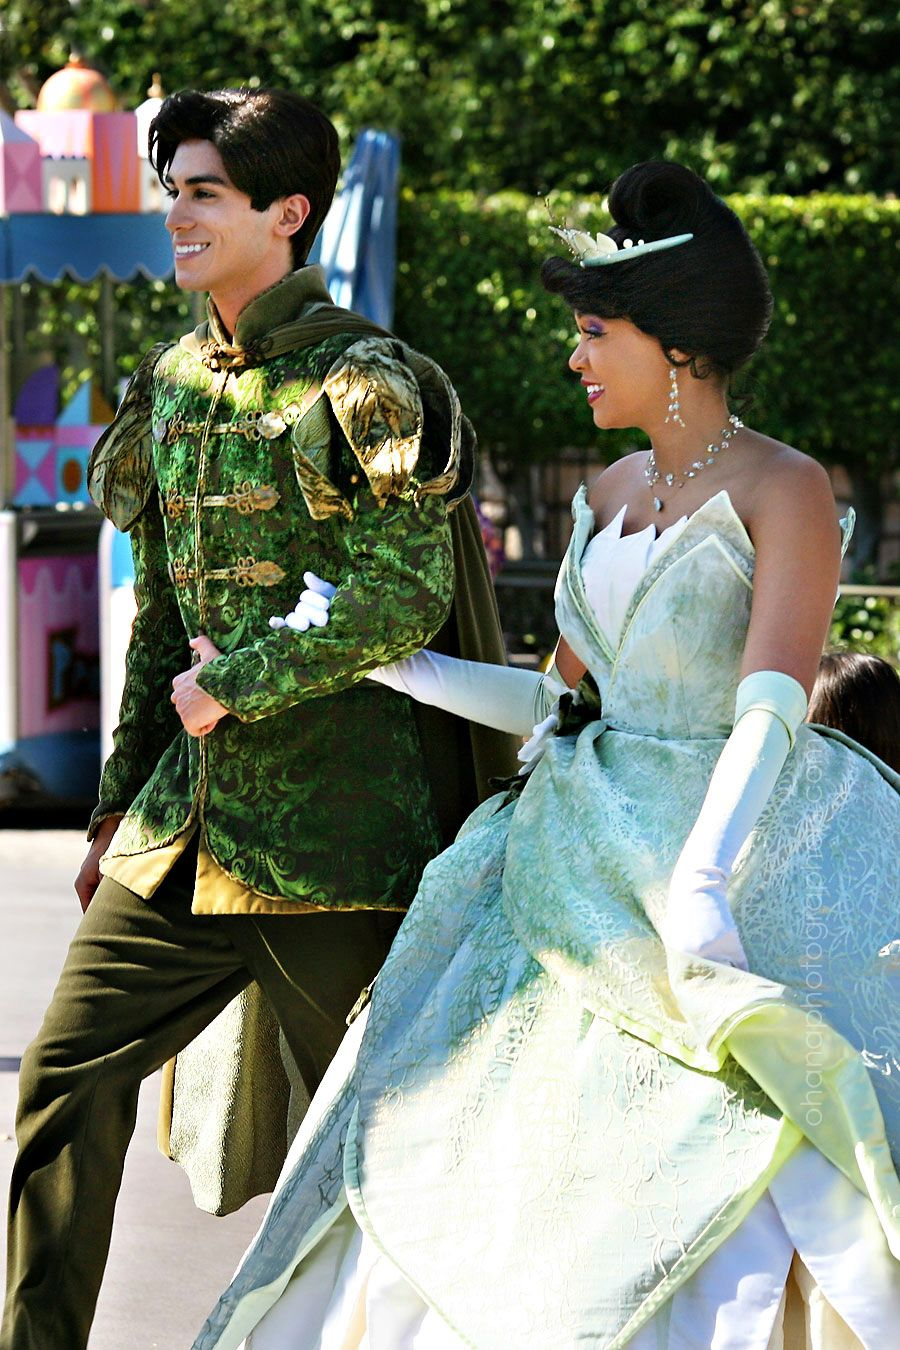 Disneyland tiana and prince naveen of the prince and the frog · Disney  Prince CostumeDisney ...